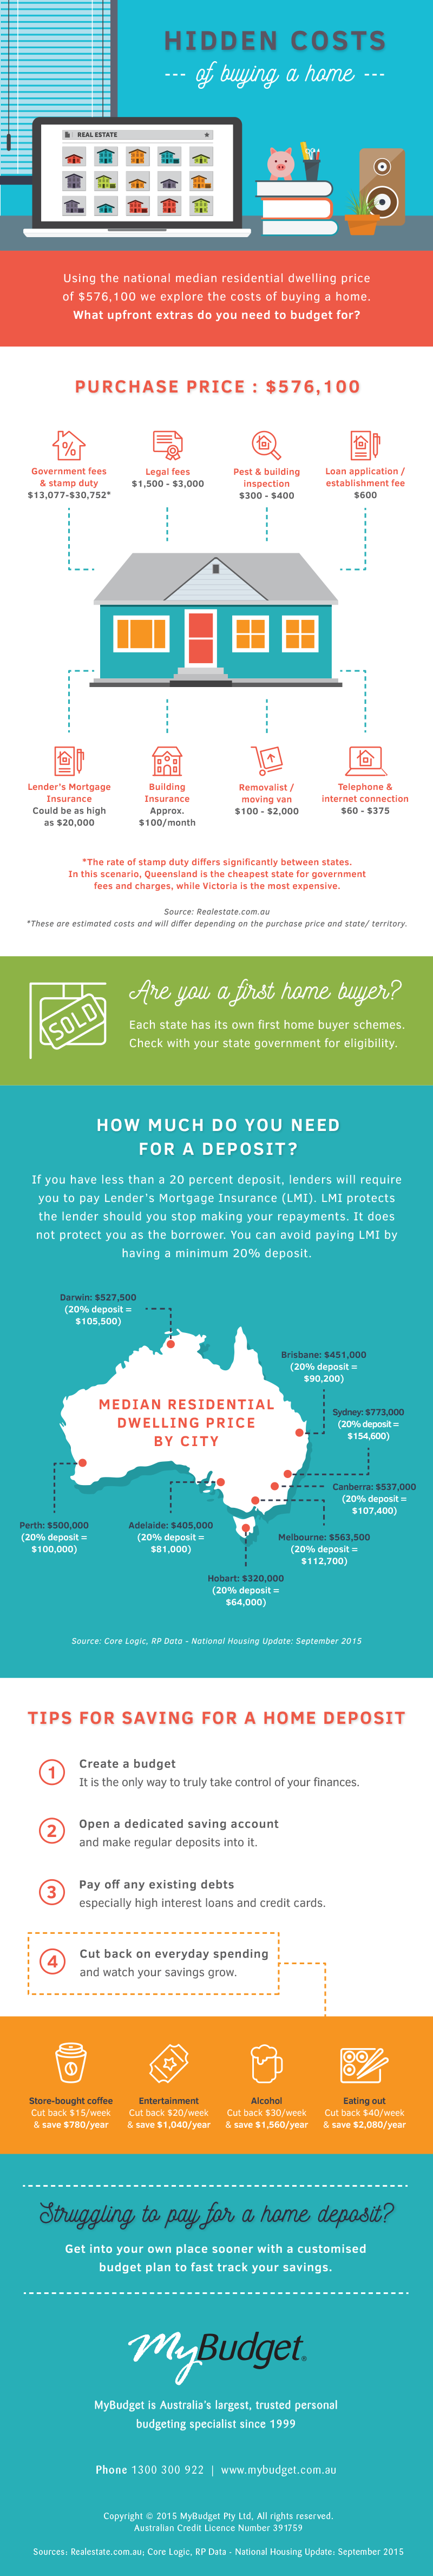 Help you save for a home deposit